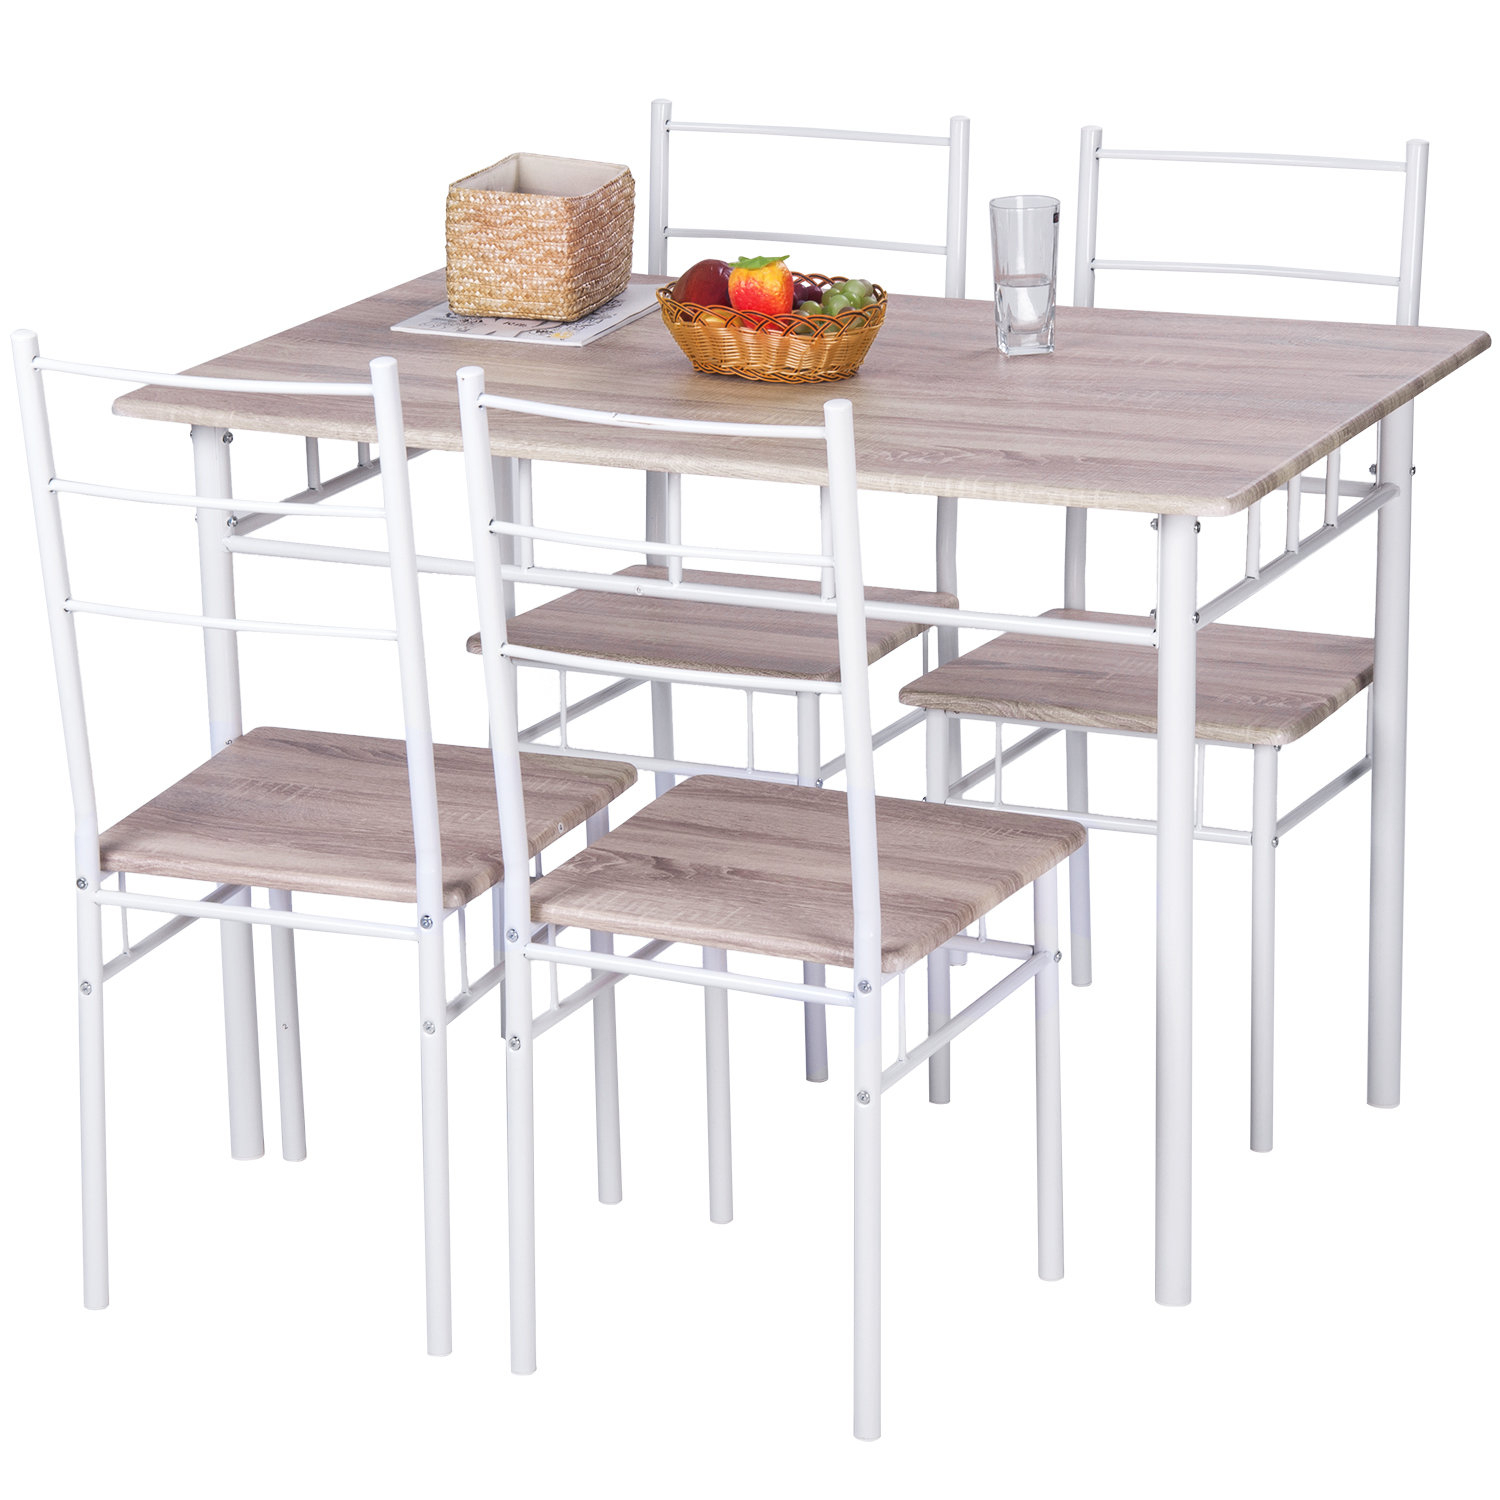 5 Piece Breakfast Nook Dining Set Pertaining To Most Popular Casiano 5 Piece Dining Sets (Photo 11 of 20)